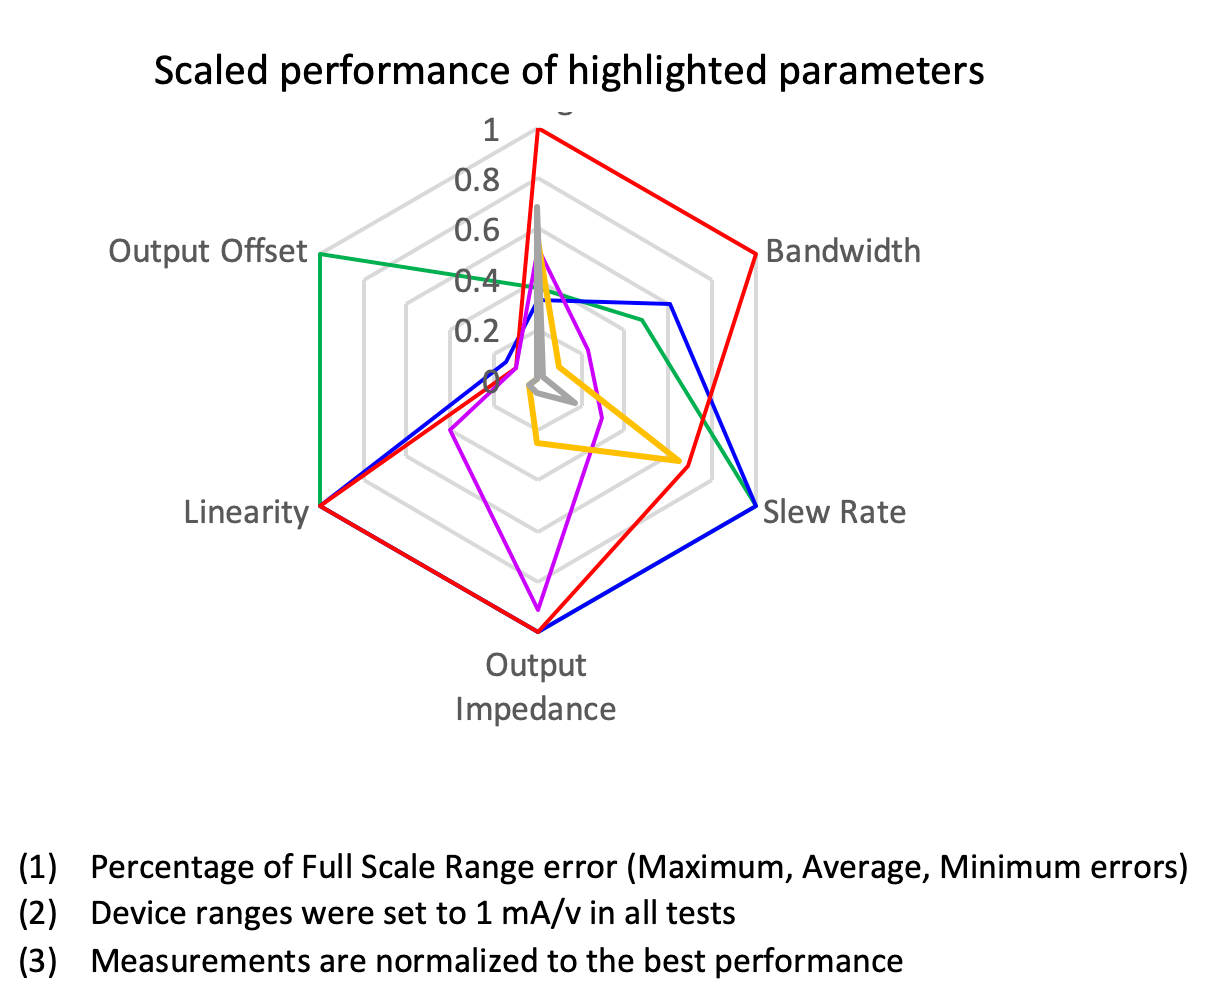 Scaled Performance of Highlighted Parameters